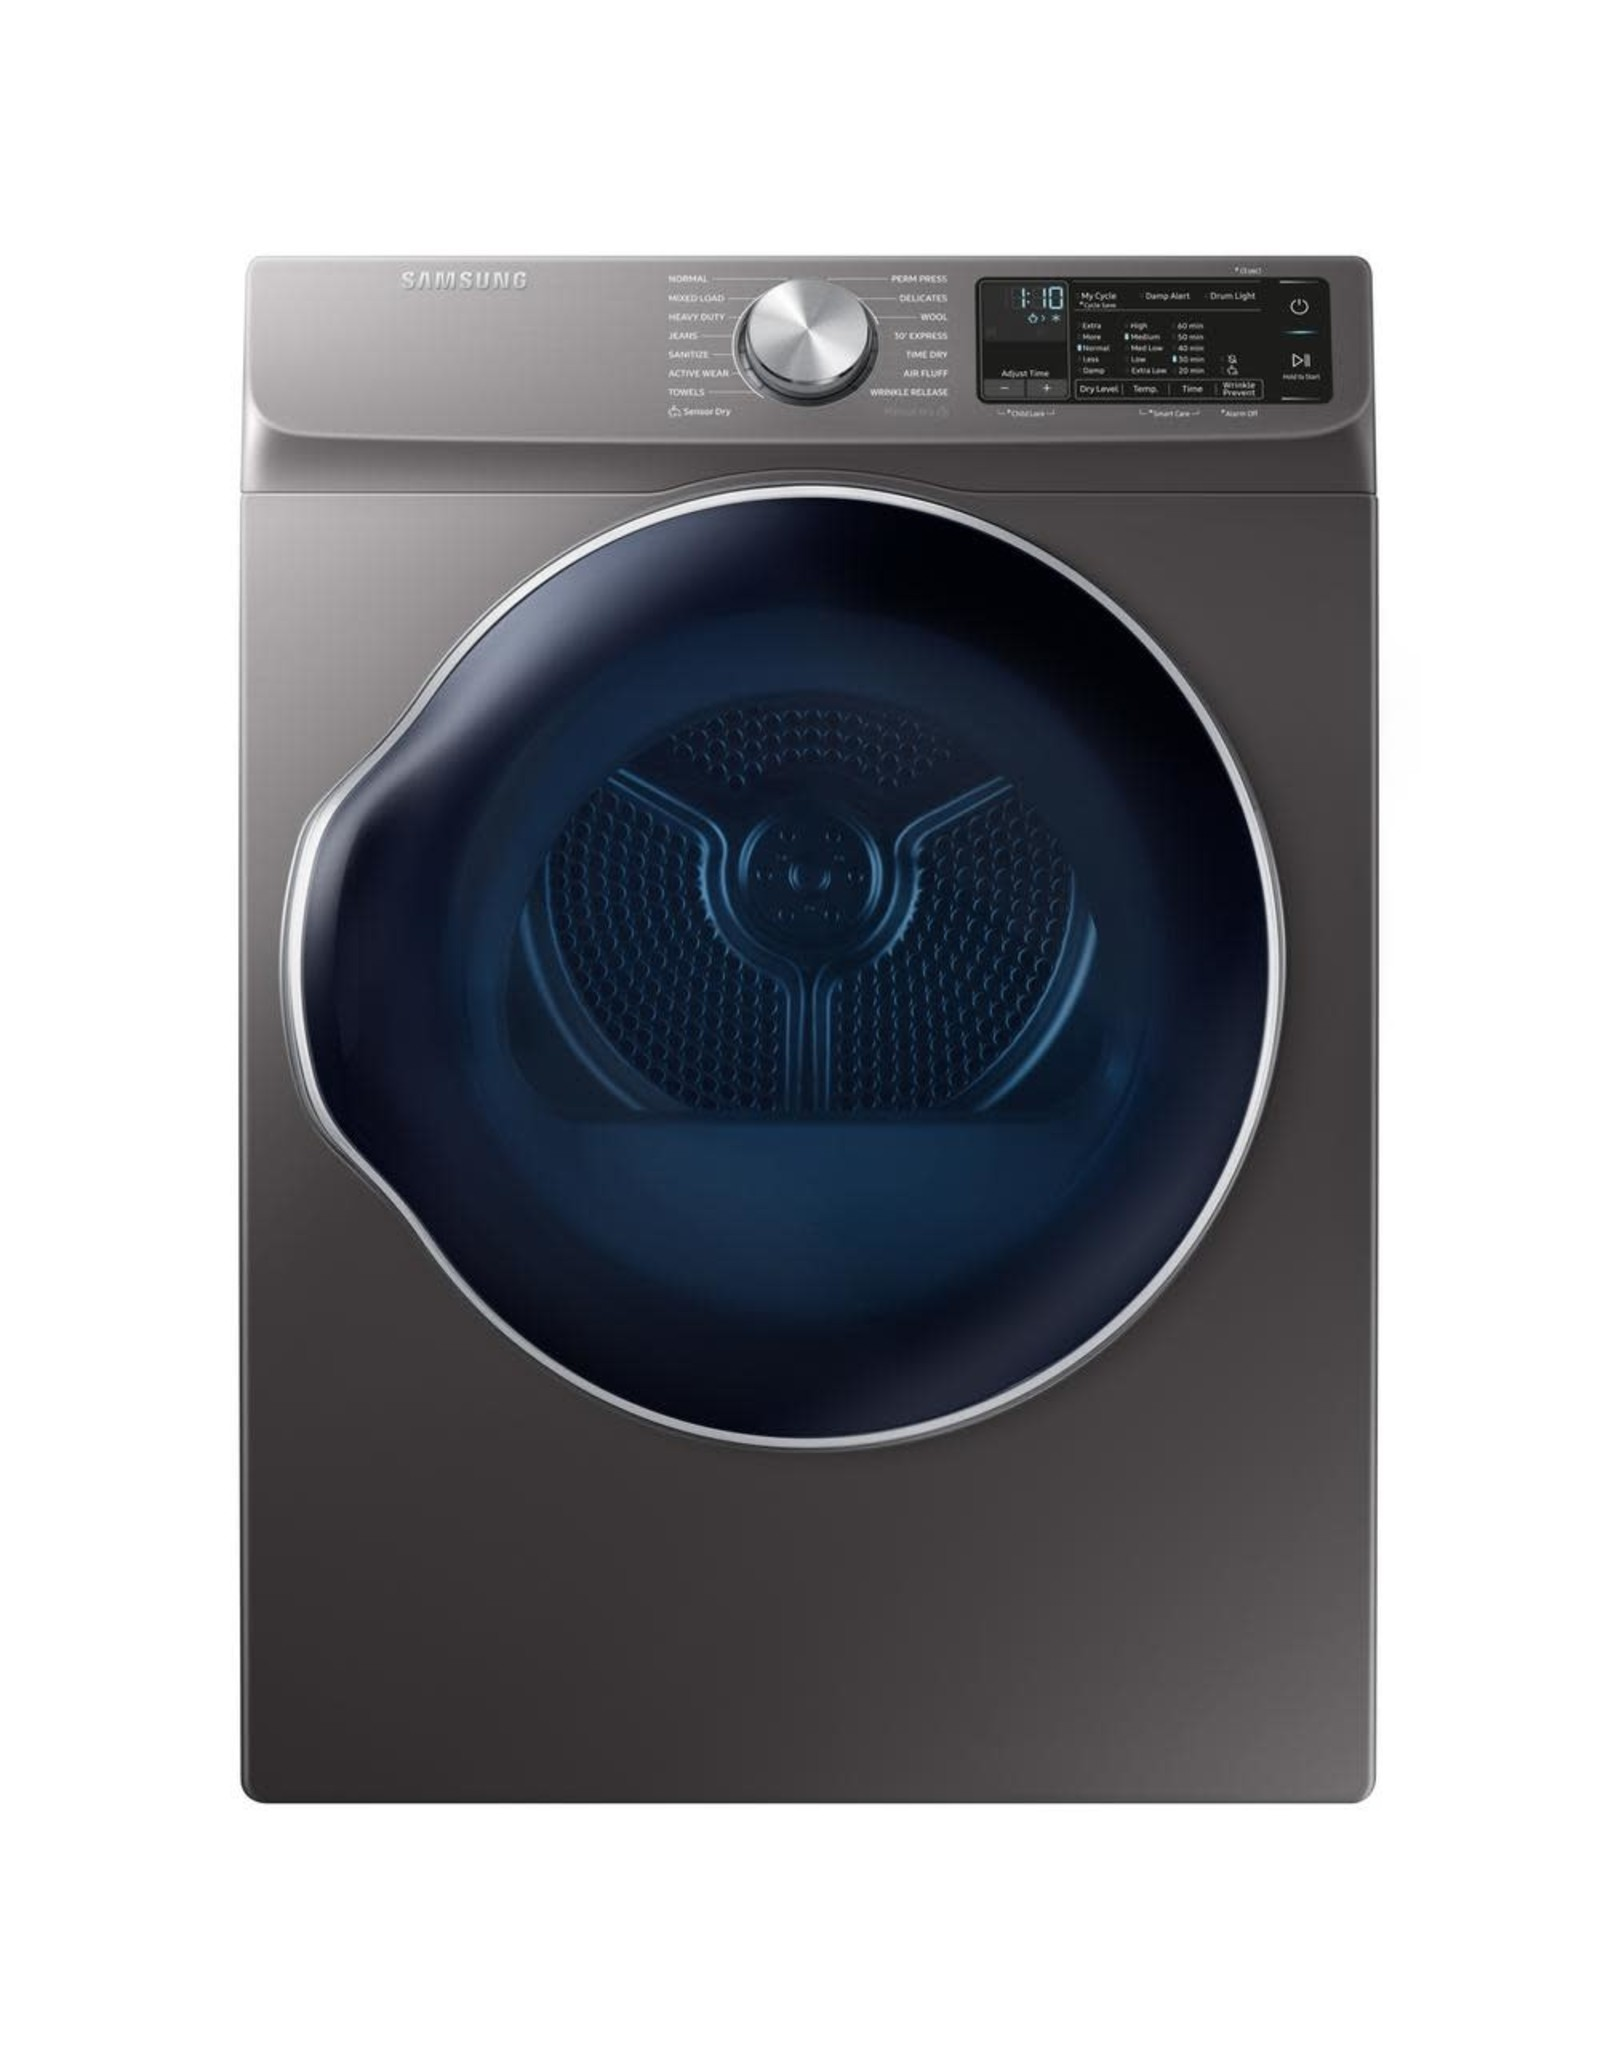 SAMSUNG DVE22N6850X  Samsung 4.0 cu. ft. Electric Vented Dryer in Gray